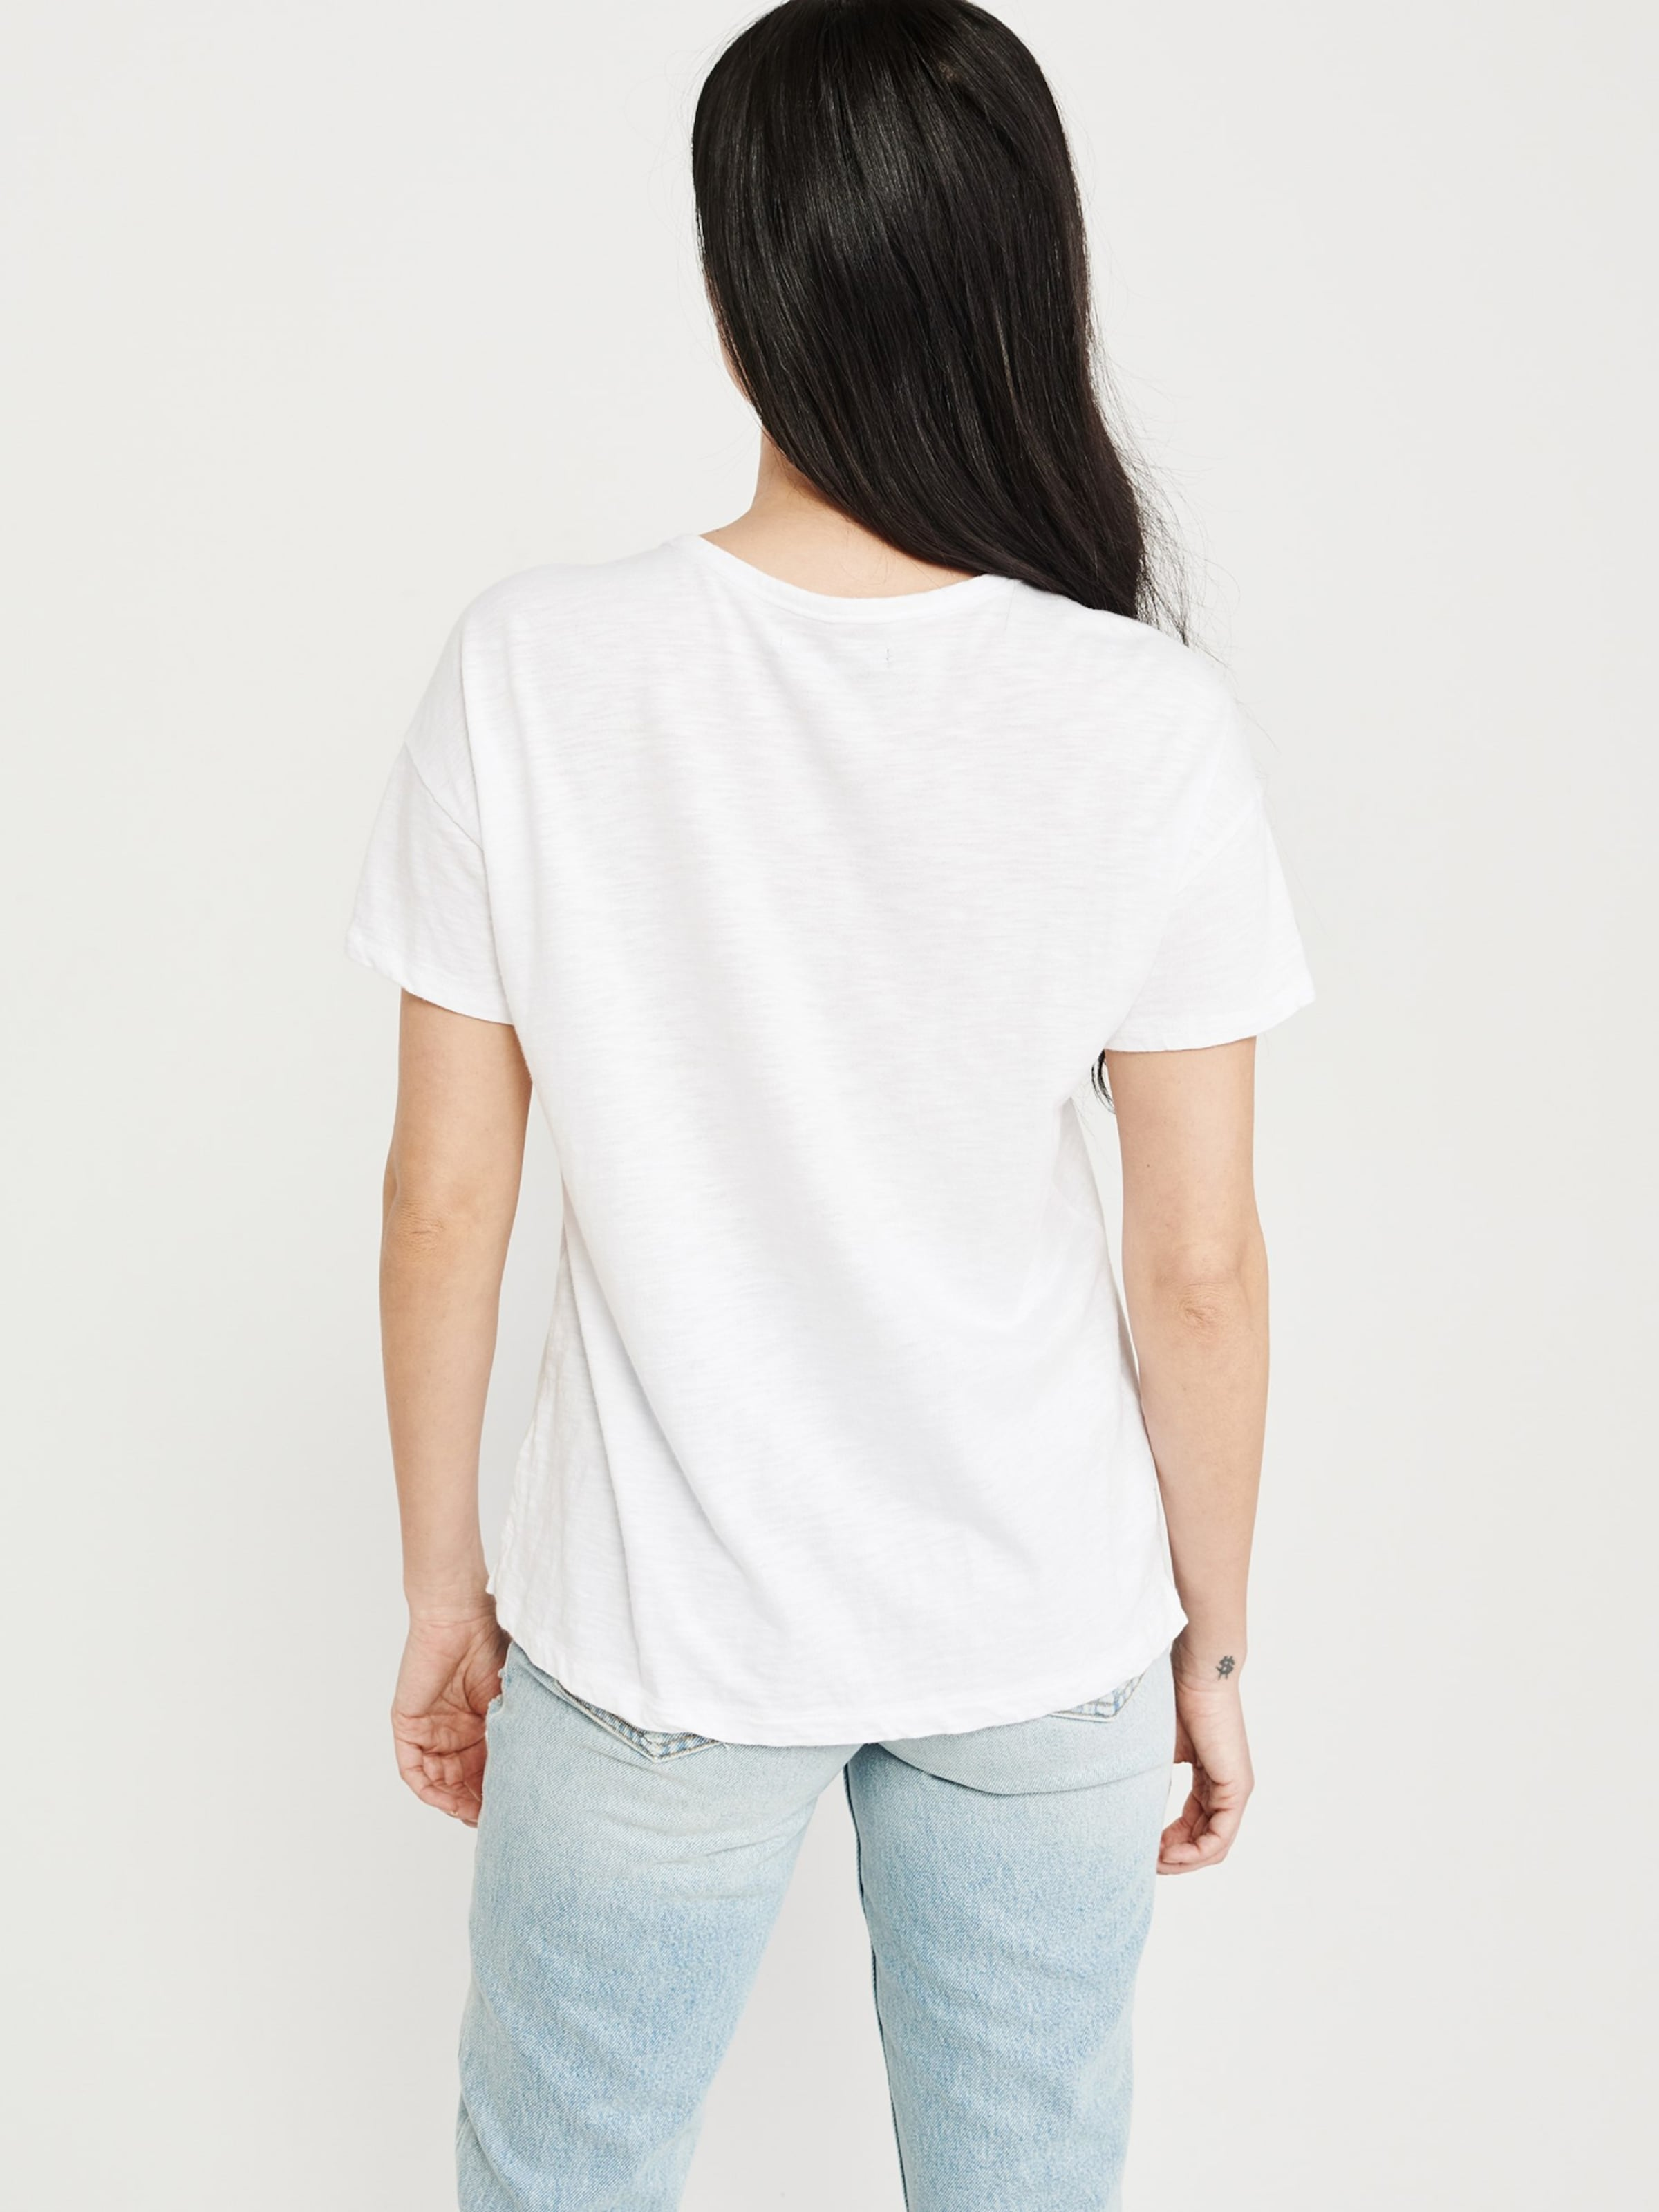 Shirt Shoulder Drop ss 'sb19 Tee Abercrombieamp; Weiß Neutrals' Fitch In rxoWBeCd